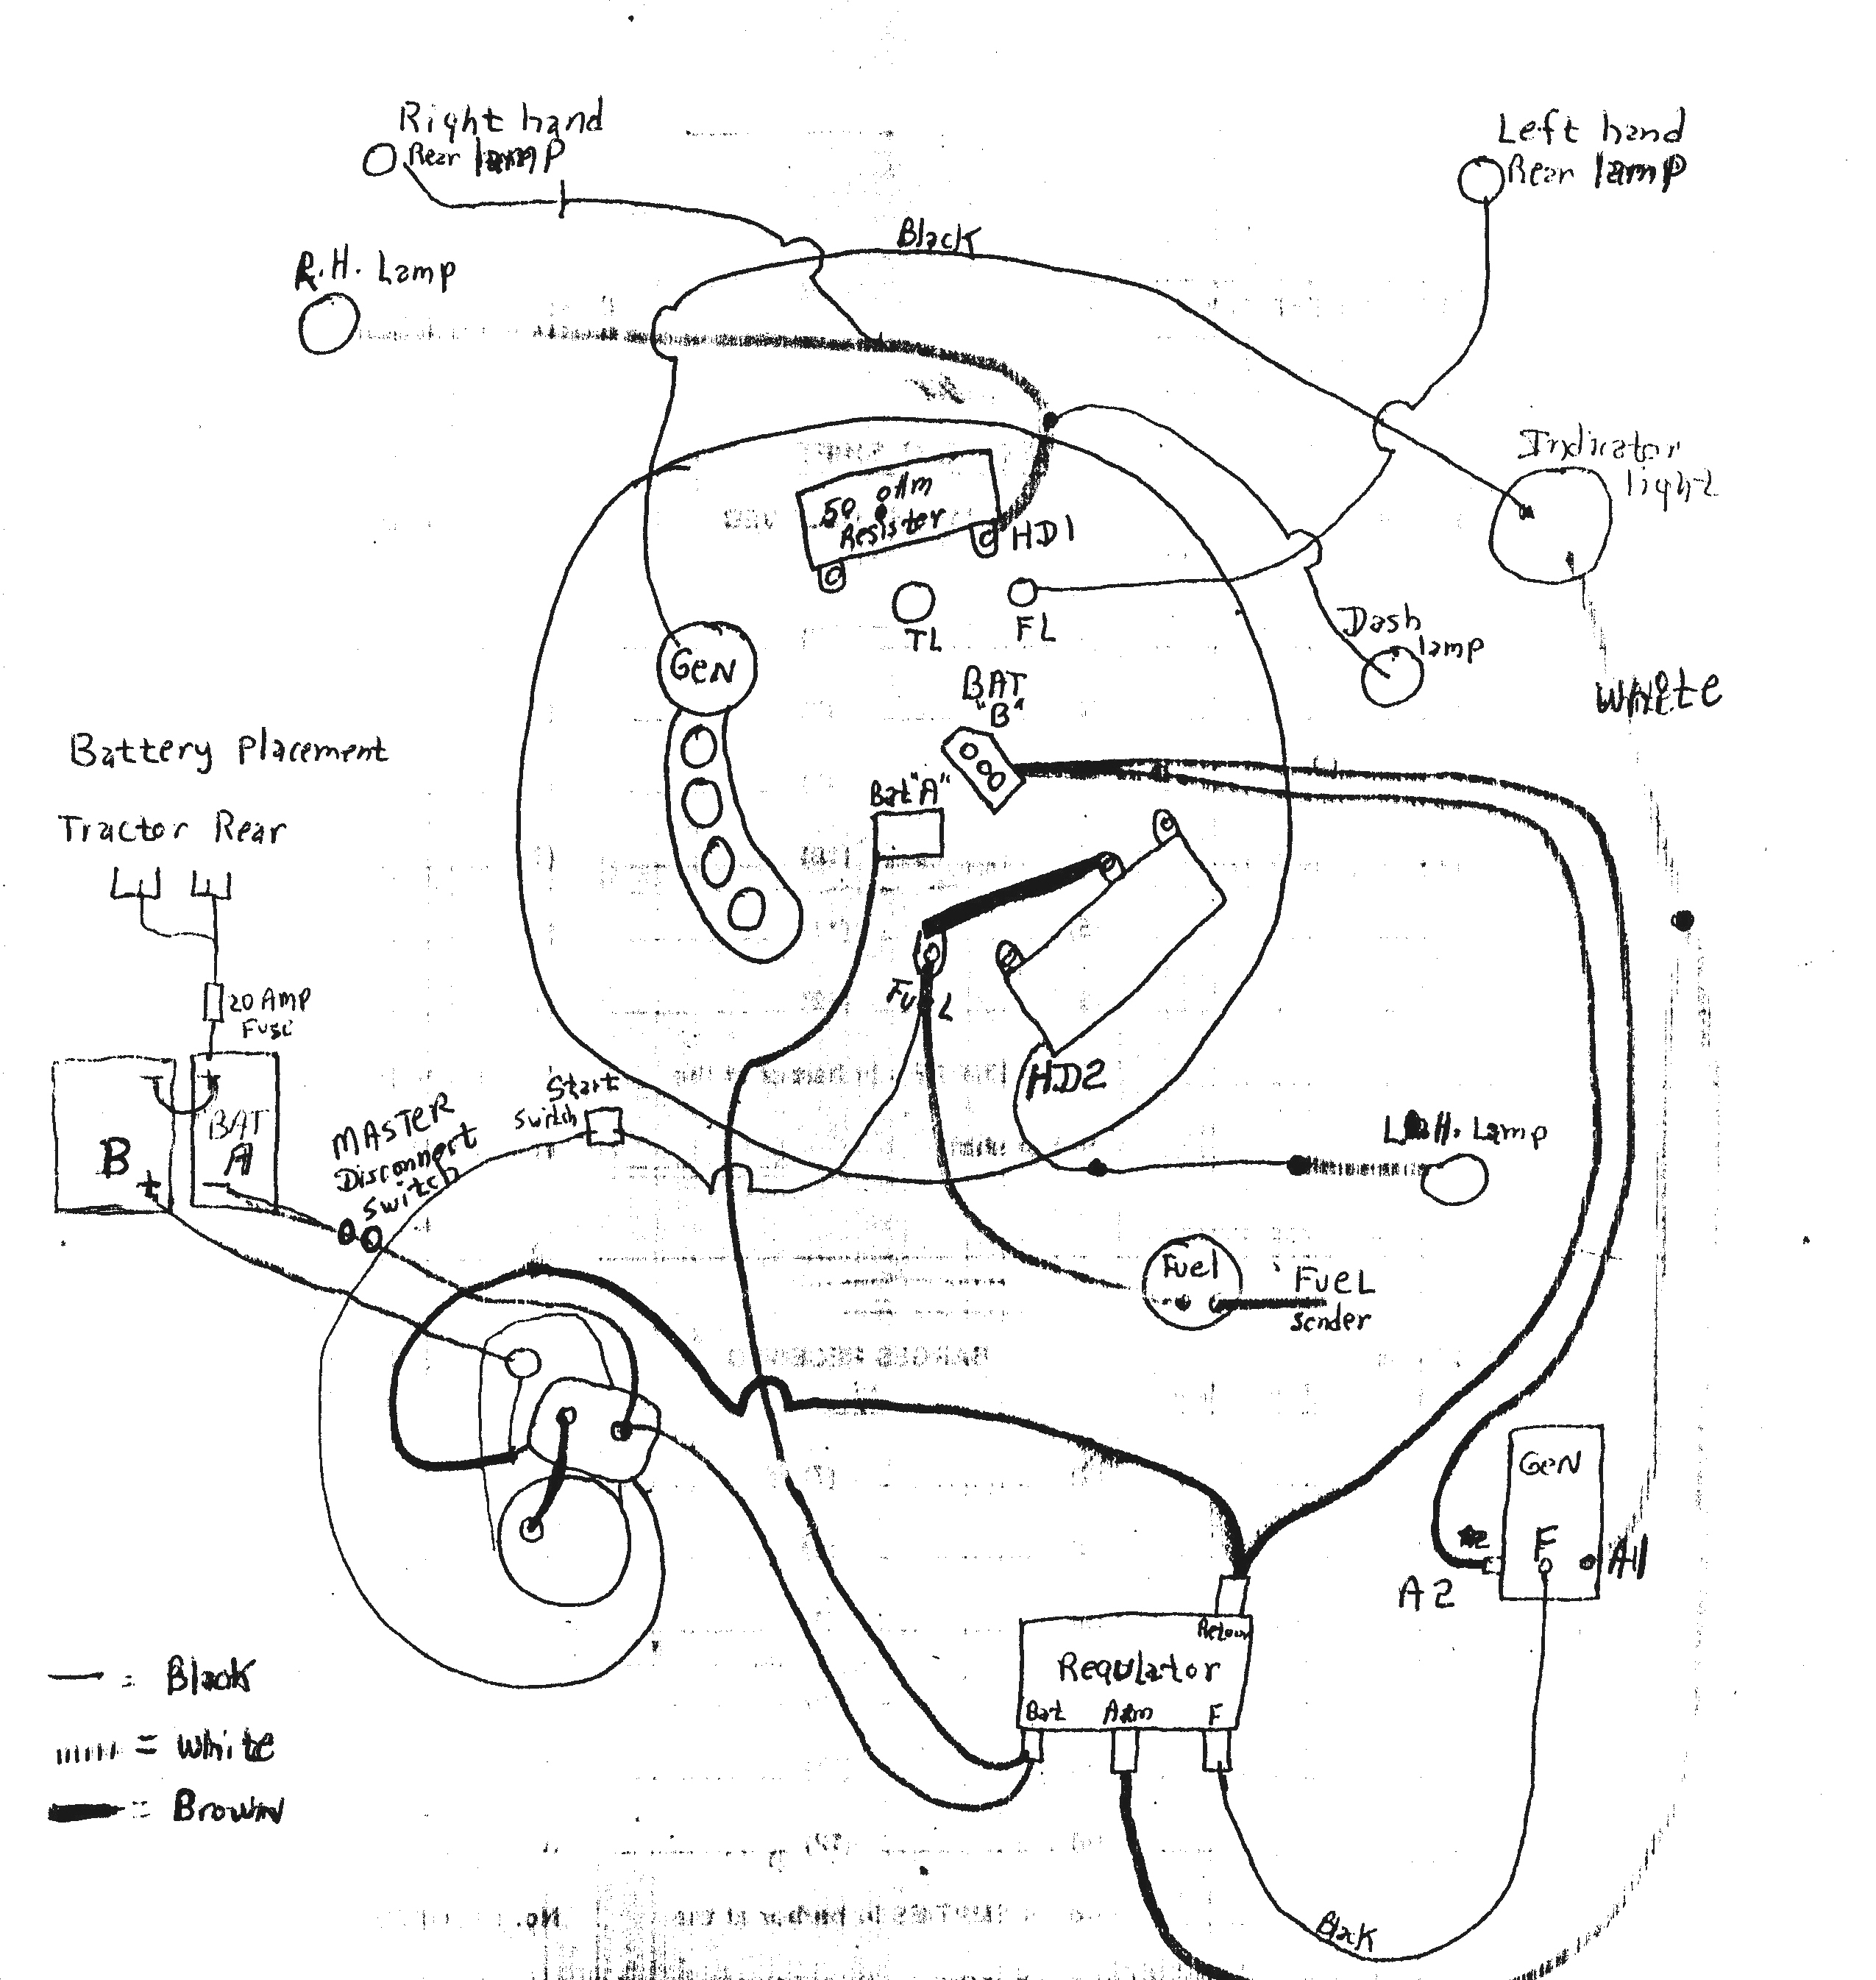 Wiring Diagram For John Deere 2030 Tractor